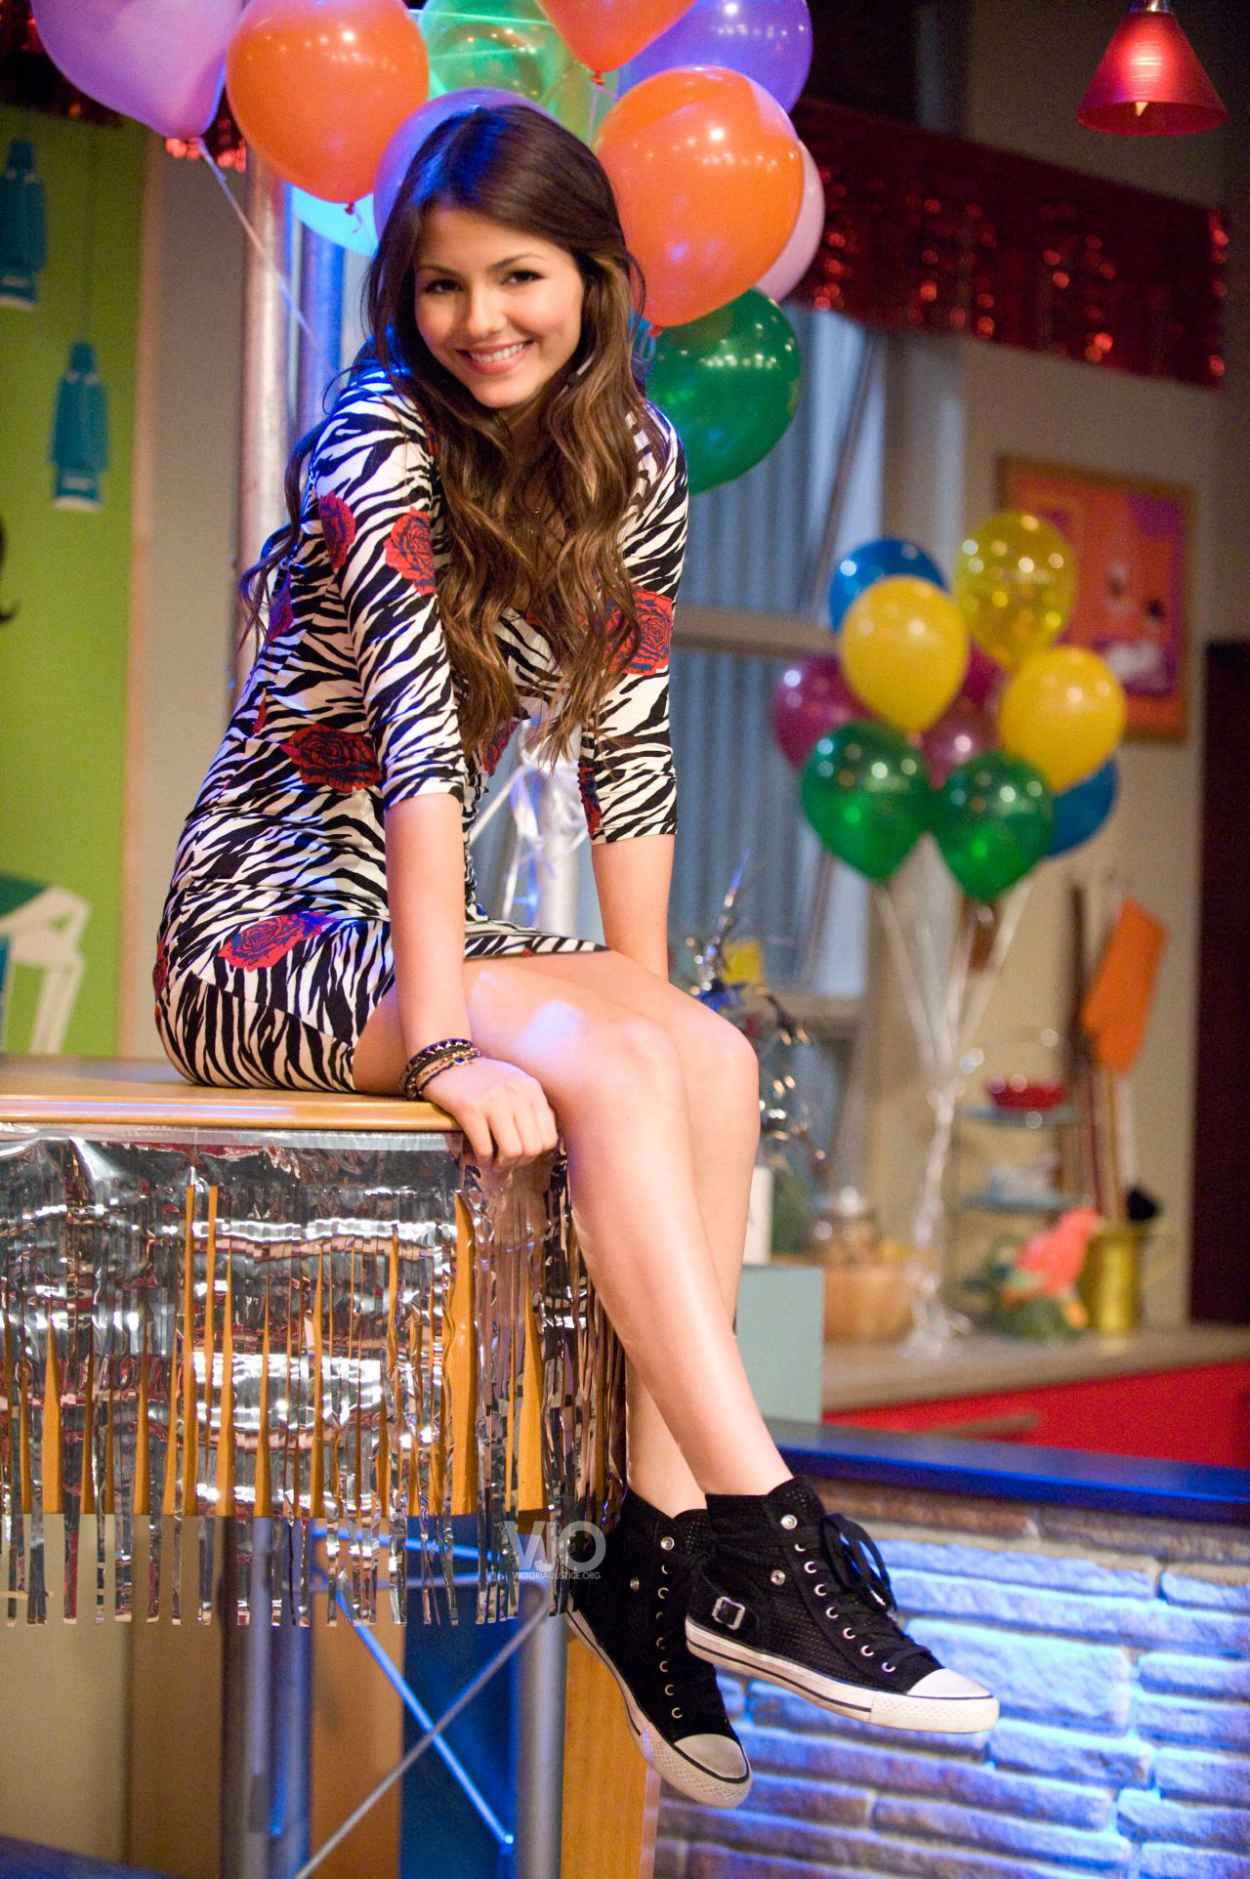 Victoria Justice - 21st Birthday Photo Collection-1